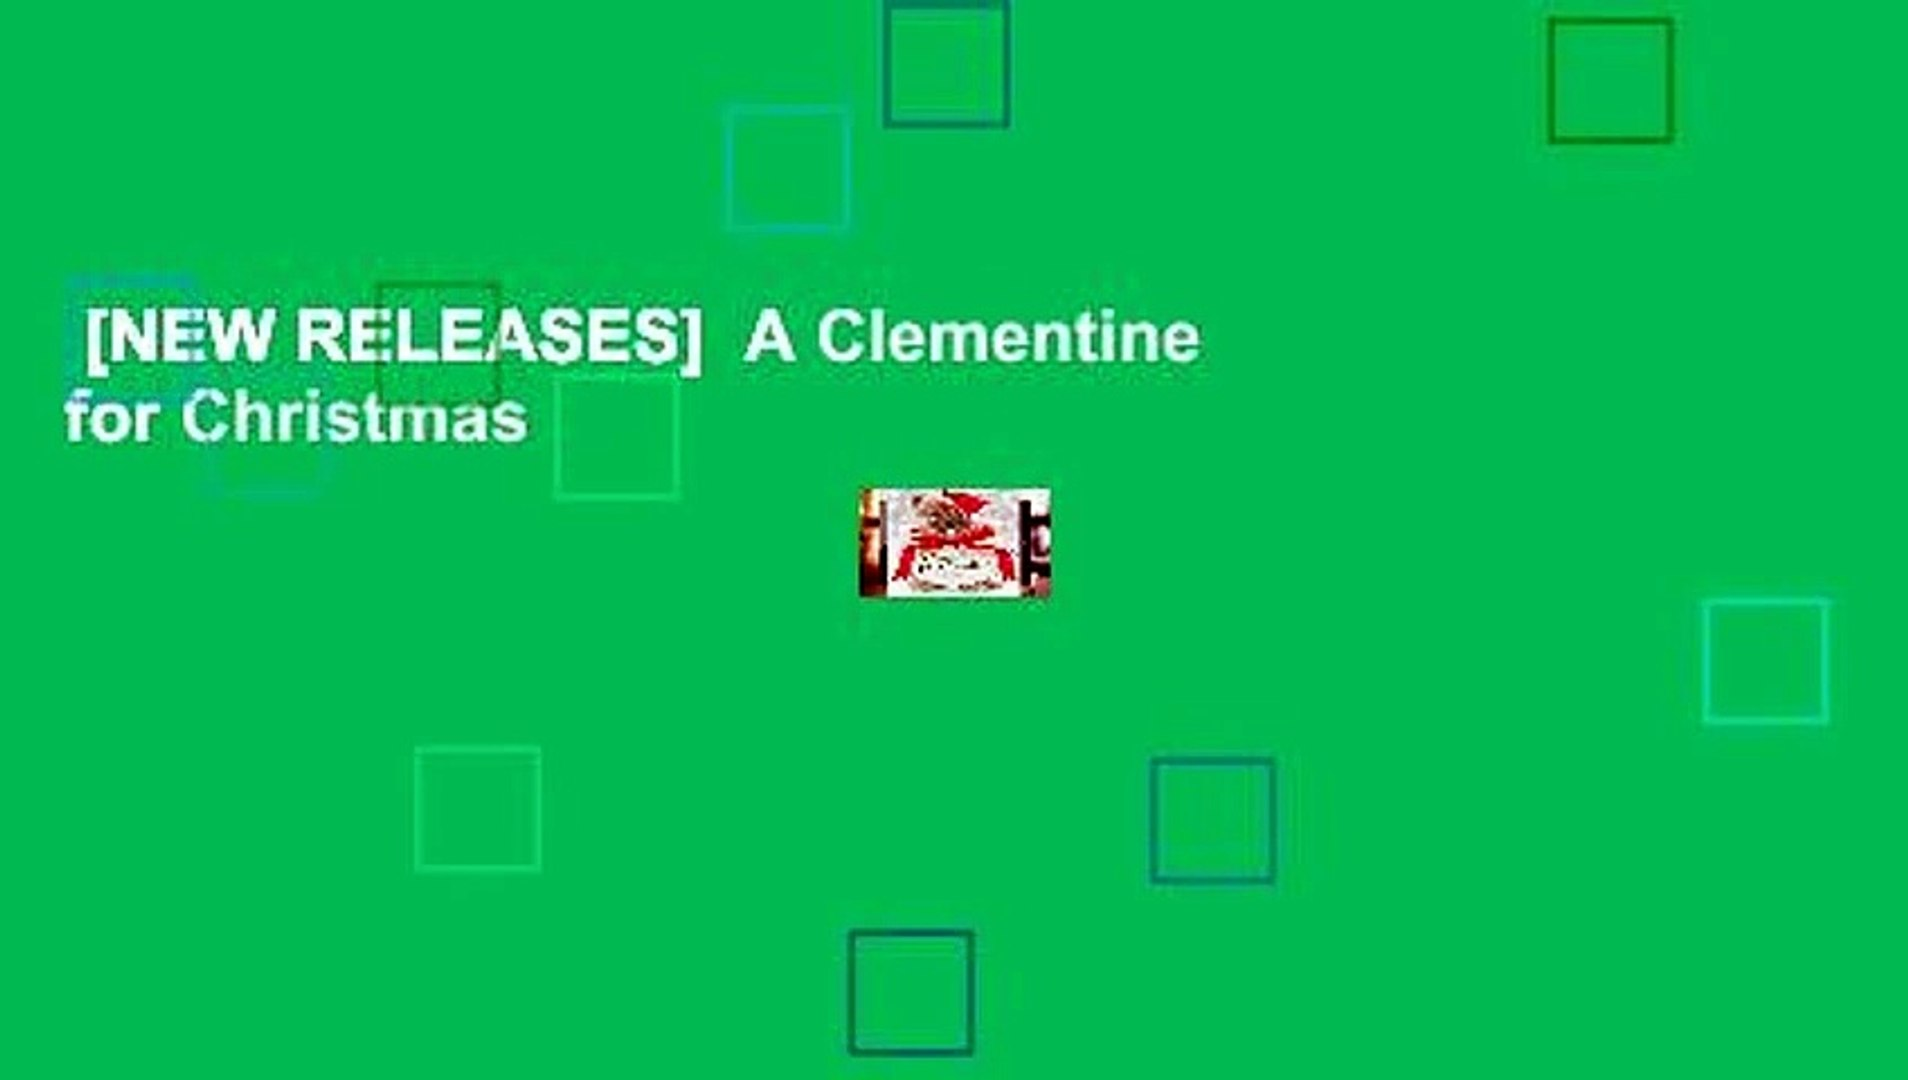 Clementine For Christmas.New Releases A Clementine For Christmas